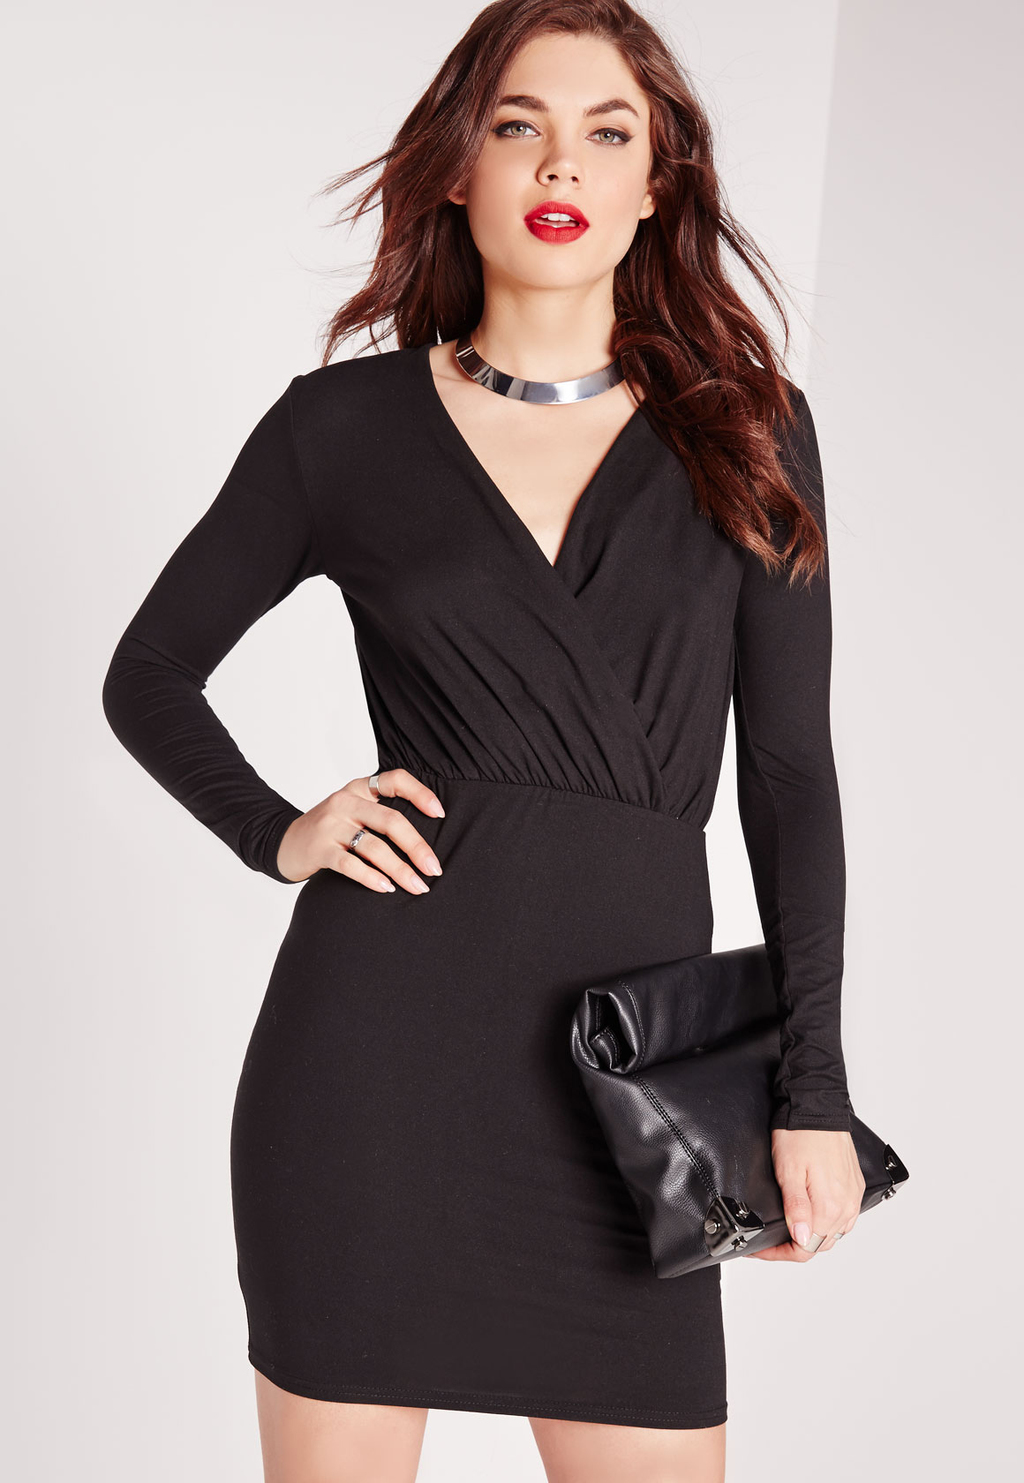 Plunge Wrap Over Bodycon Dress Black, Black - length: mini; neckline: v-neck; pattern: plain; style: bodycon; hip detail: draws attention to hips; bust detail: subtle bust detail; predominant colour: black; occasions: evening, occasion; fit: body skimming; fibres: polyester/polyamide - stretch; sleeve length: long sleeve; sleeve style: standard; texture group: jersey - clingy; pattern type: fabric; season: s/s 2016; wardrobe: event